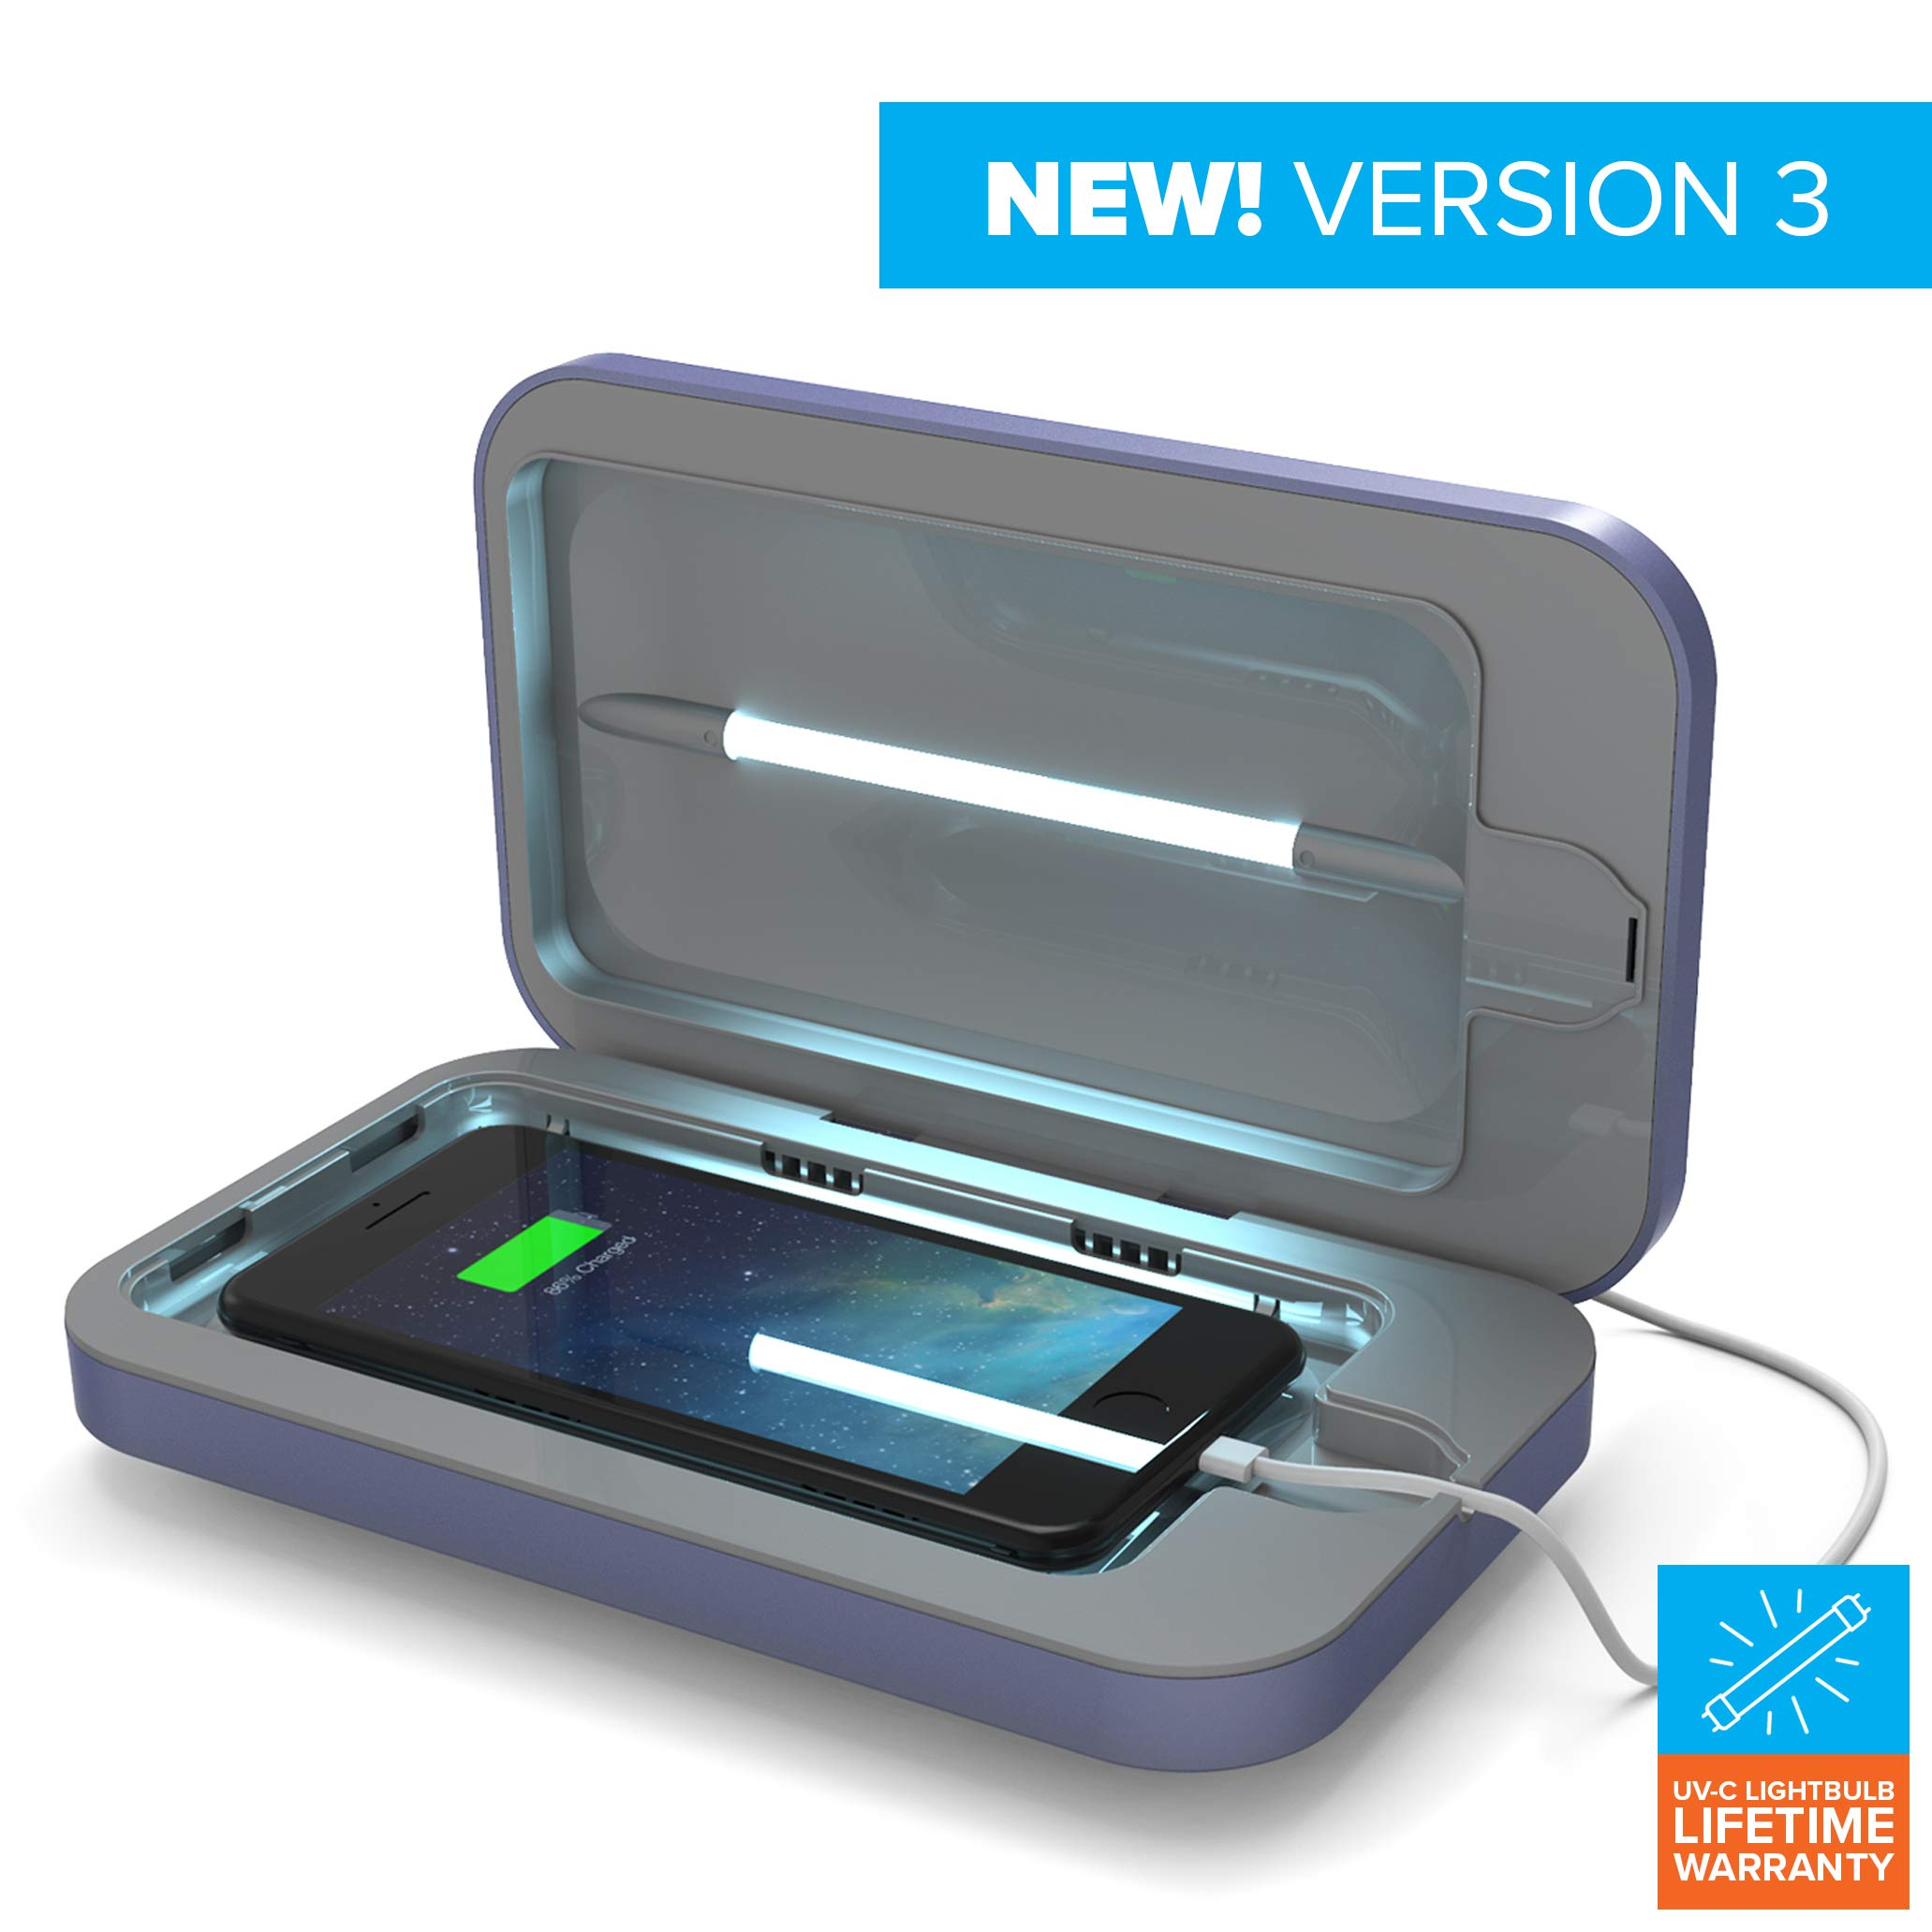 PhoneSoap 3.0 UV Sanitizer and Universal Phone Charger (Periwinkle 3.0, Single)